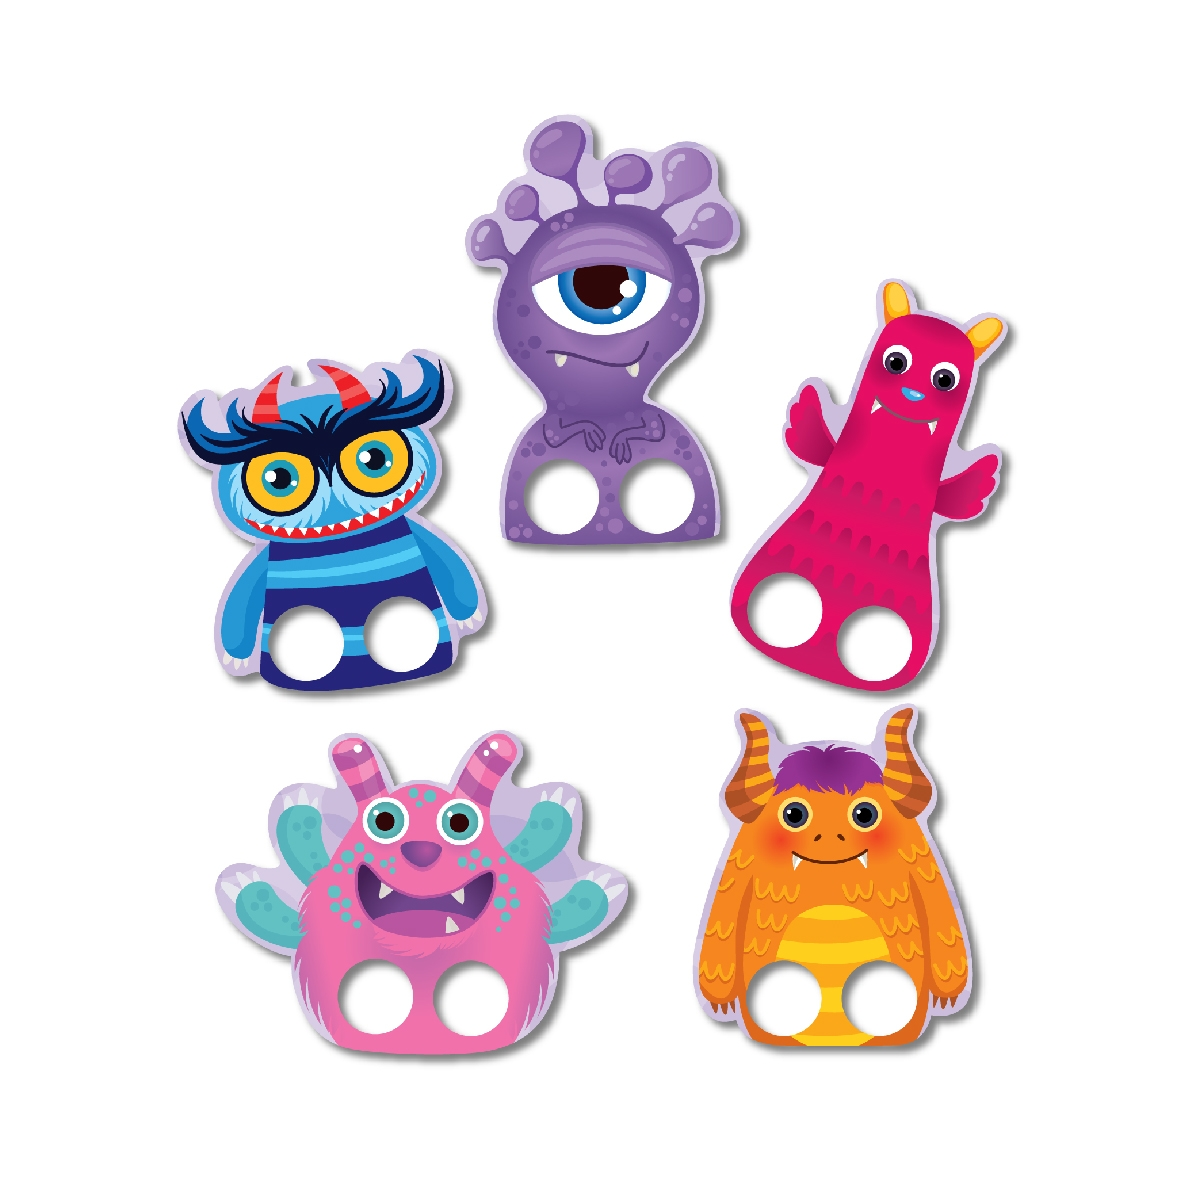 Finger Puppet – Cheerful Monsters